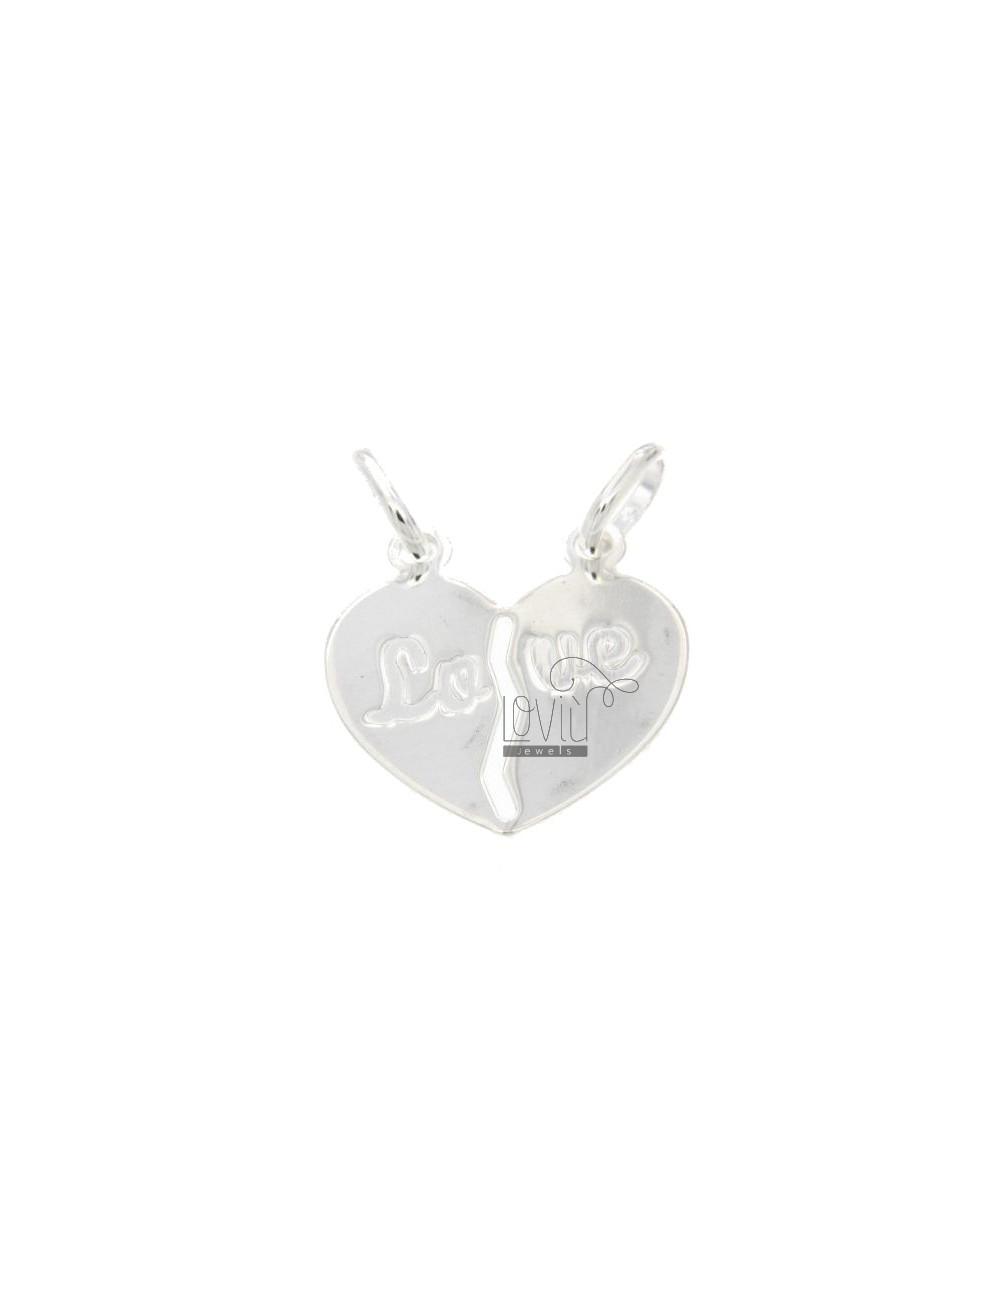 PENDANT HEART DIVIDED WITH LOVE WRITTEN INCISA SILVER 925 ‰